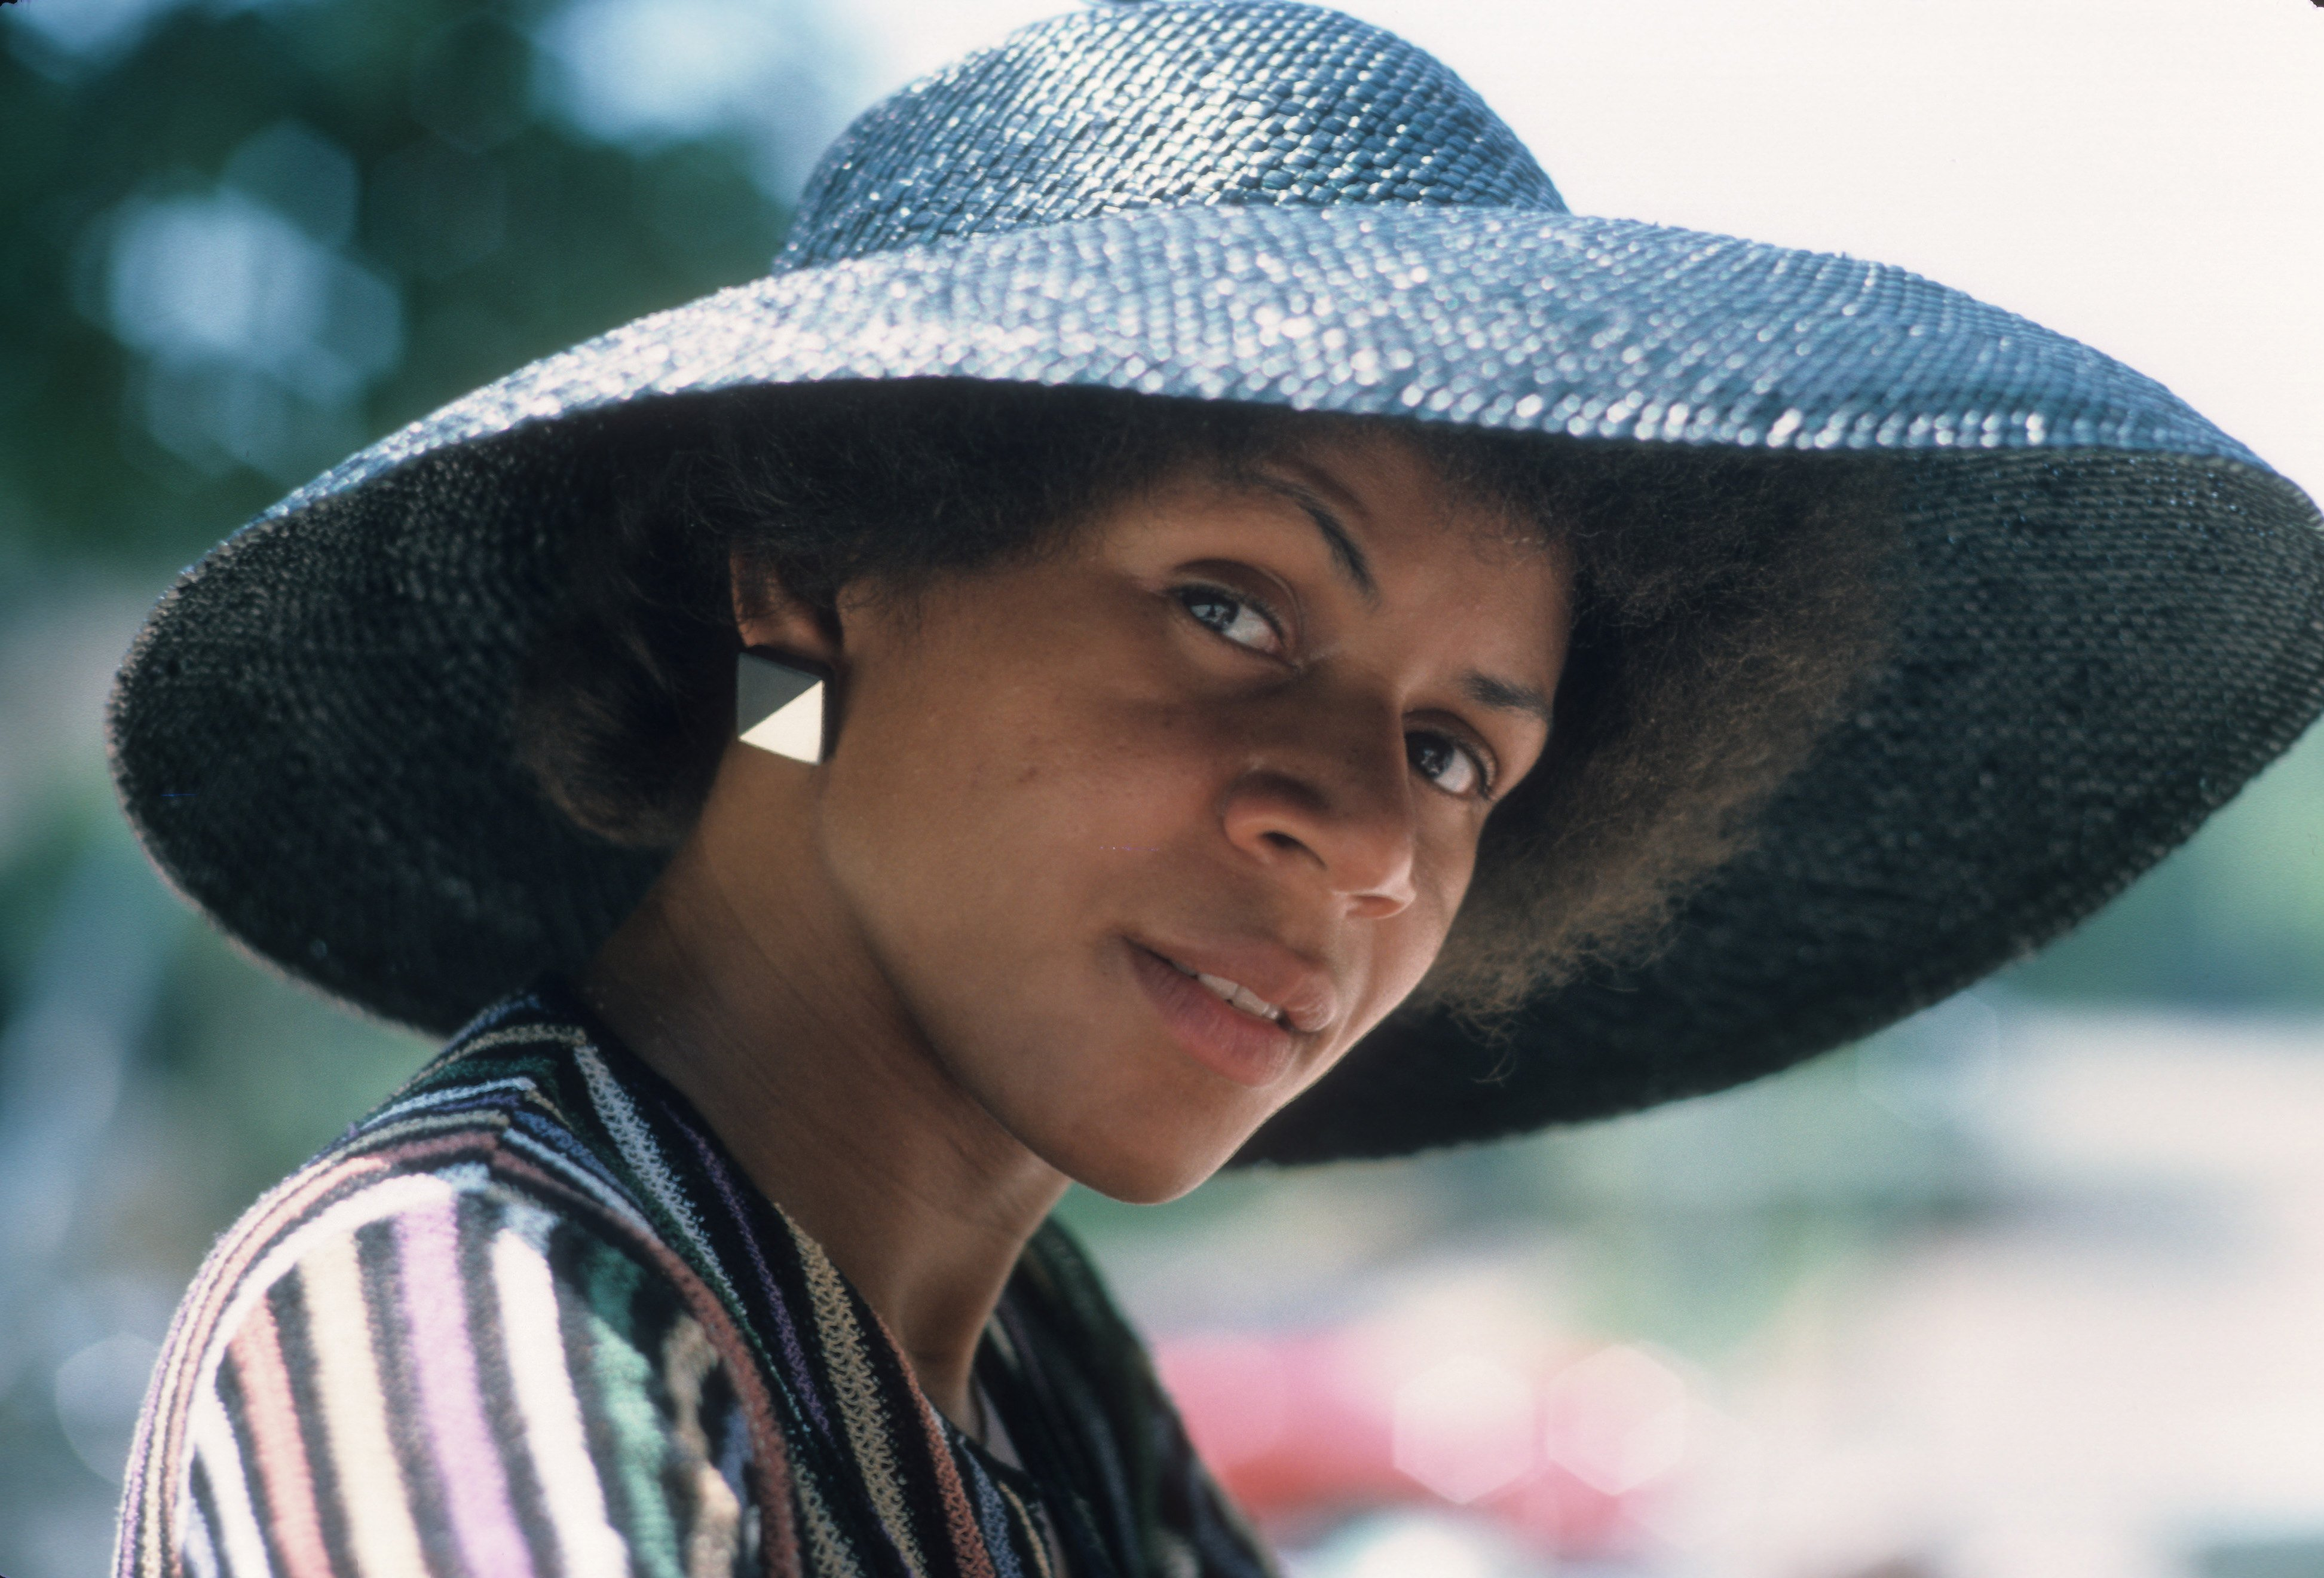 Minnie Riperton poses for a portrait in August 1975 in Los Angeles, California   Photo: Getty Images